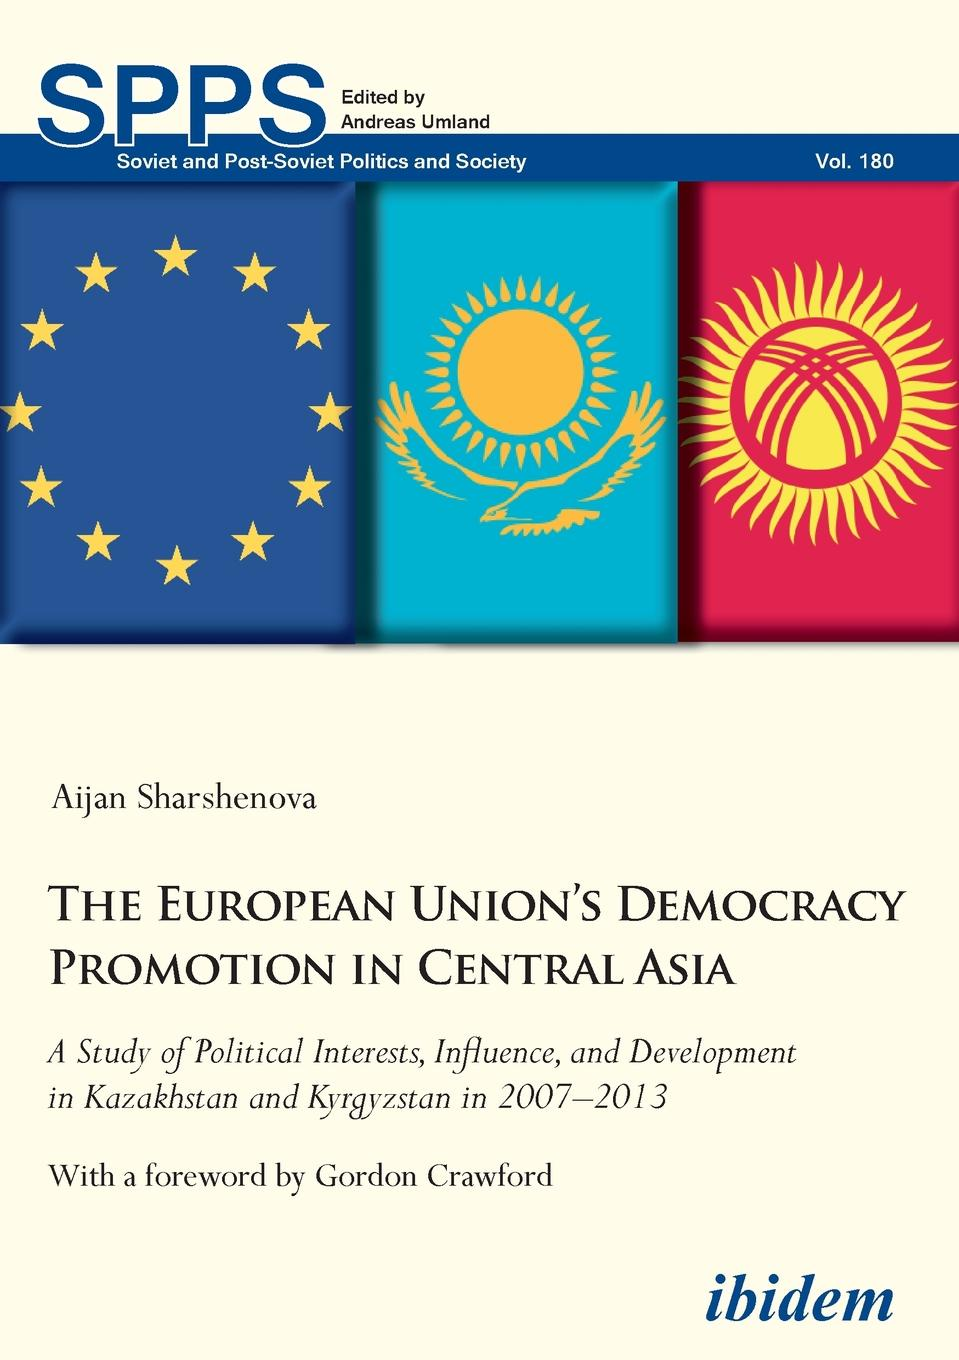 Aijan Sharshenova The European Union.s Democracy Promotion in Central Asia. A Study of Political Interests, Influence, and Development in Kazakhstan and Kyrgyzstan in 2007-2013 все цены